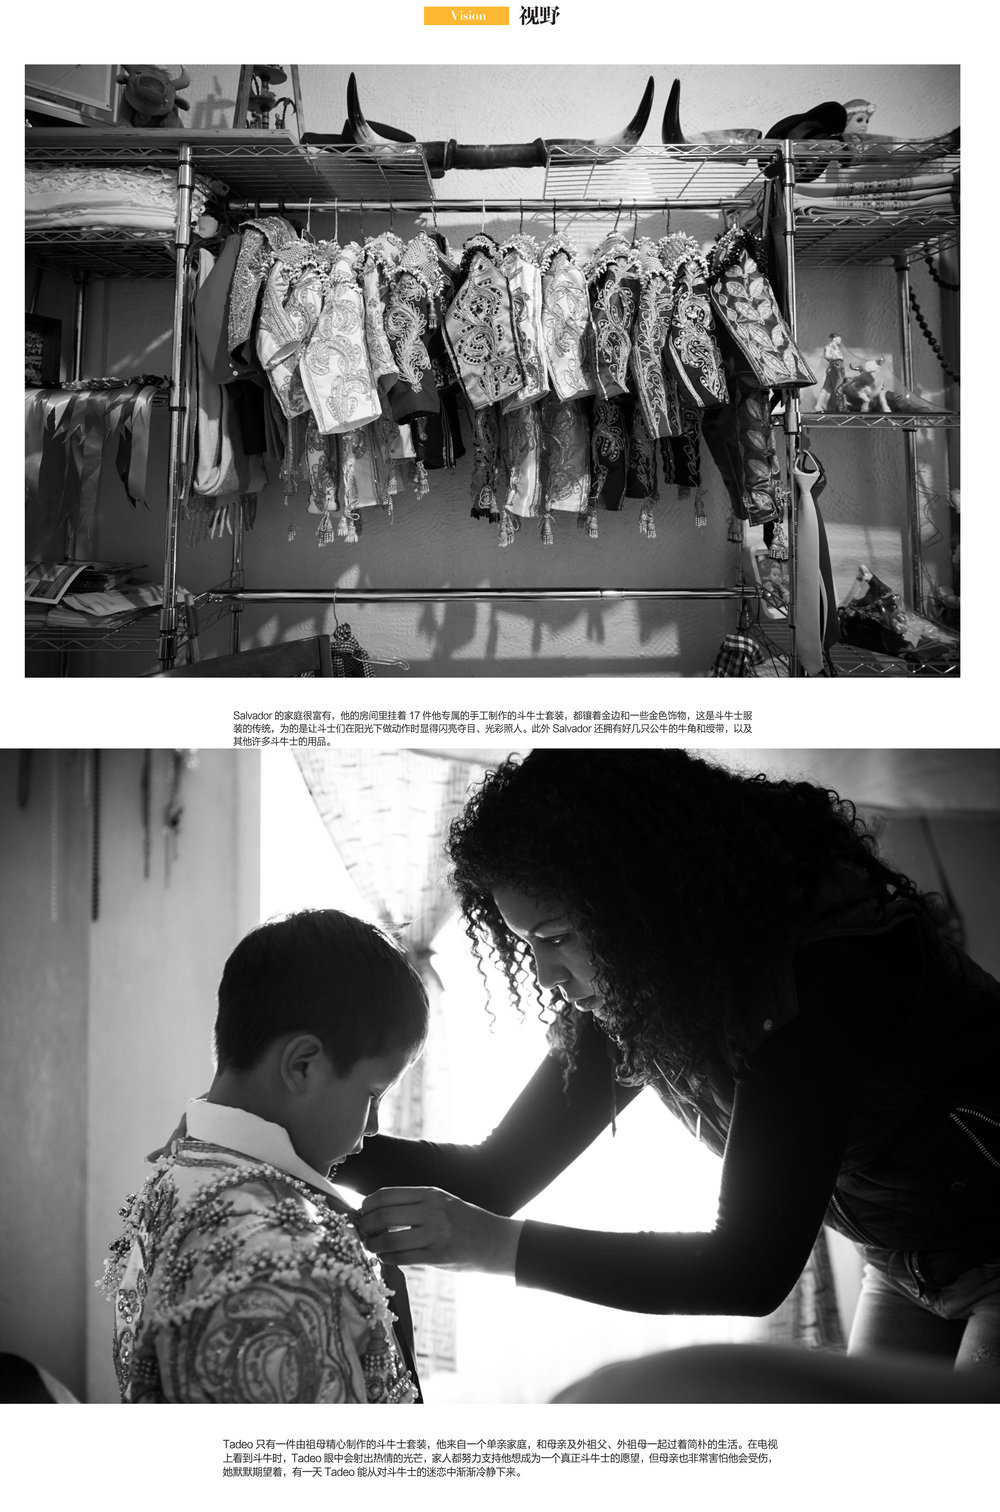 China National Travel Magazine - May 2018 - The Little Bullfighters -page 5 & 6